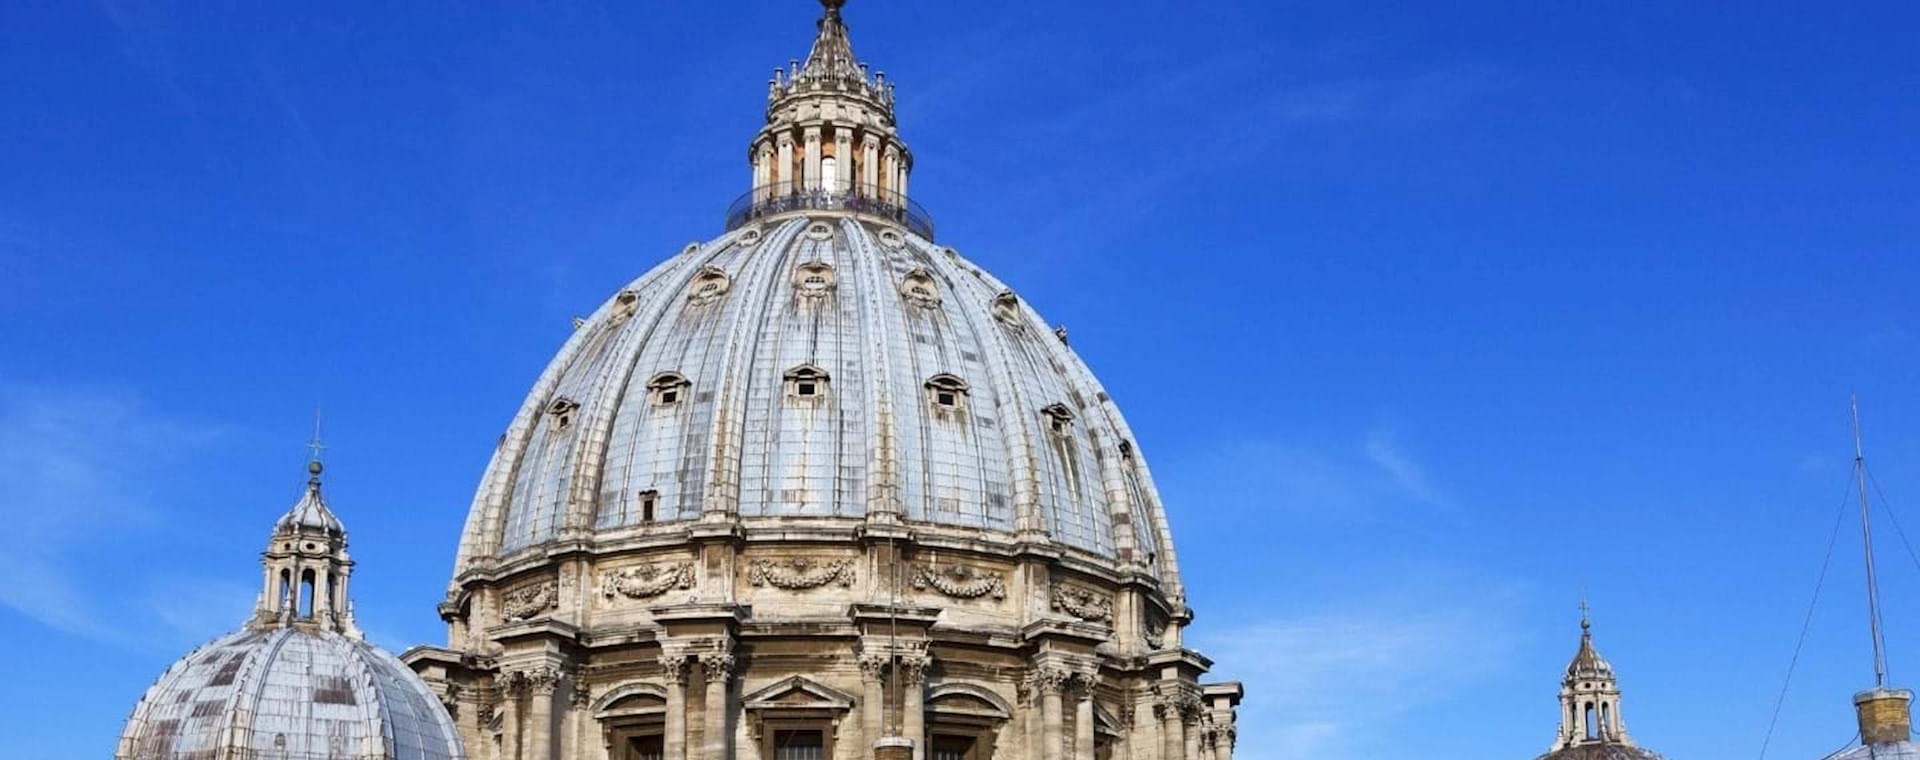 St. Peter's Basilica Dome Climb Experience